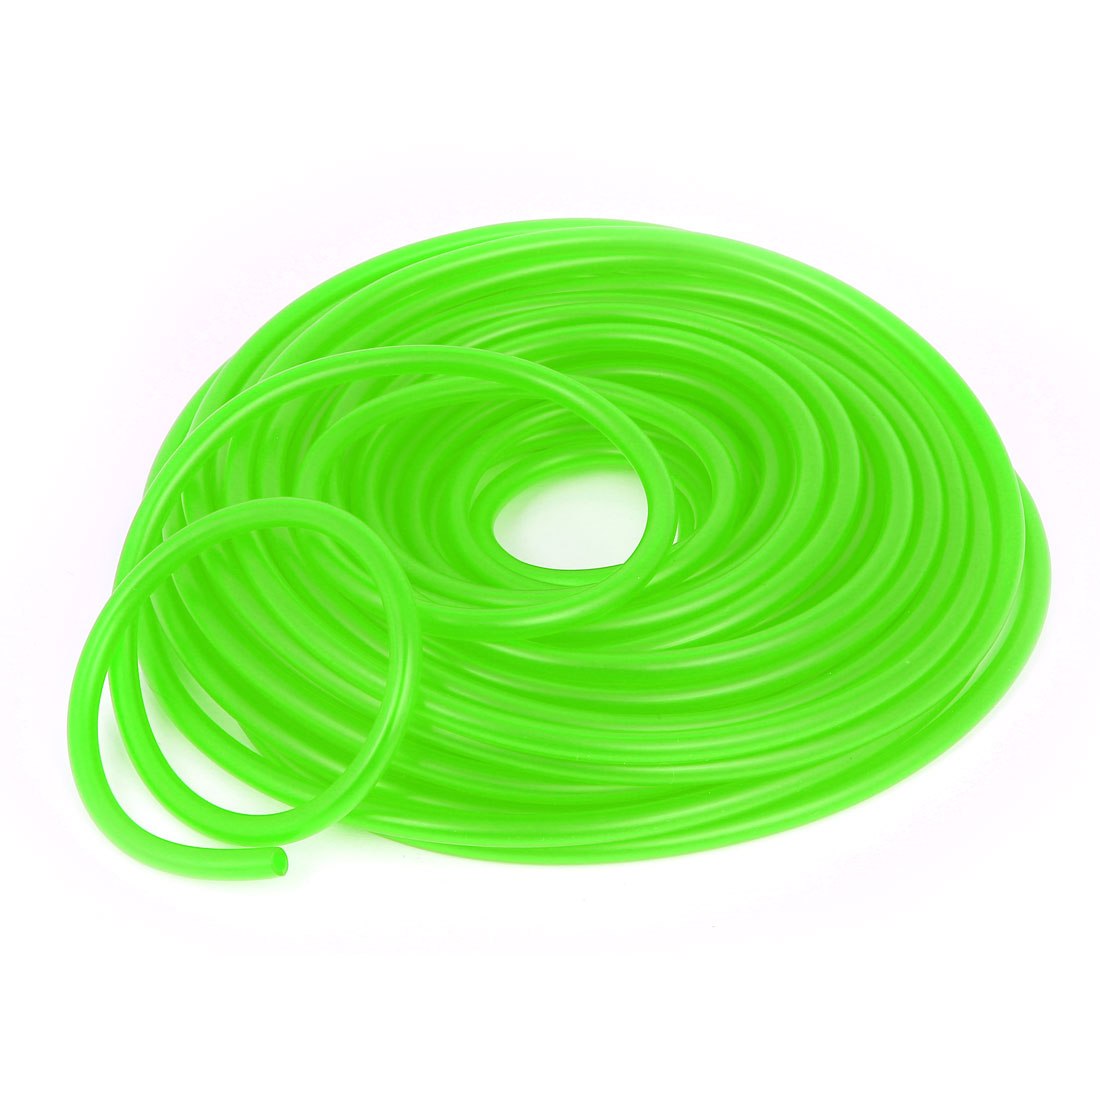 8mm OD 4.5mm Inner Dia Green Silicone Fuel Line Tube Pipe 18 Meters